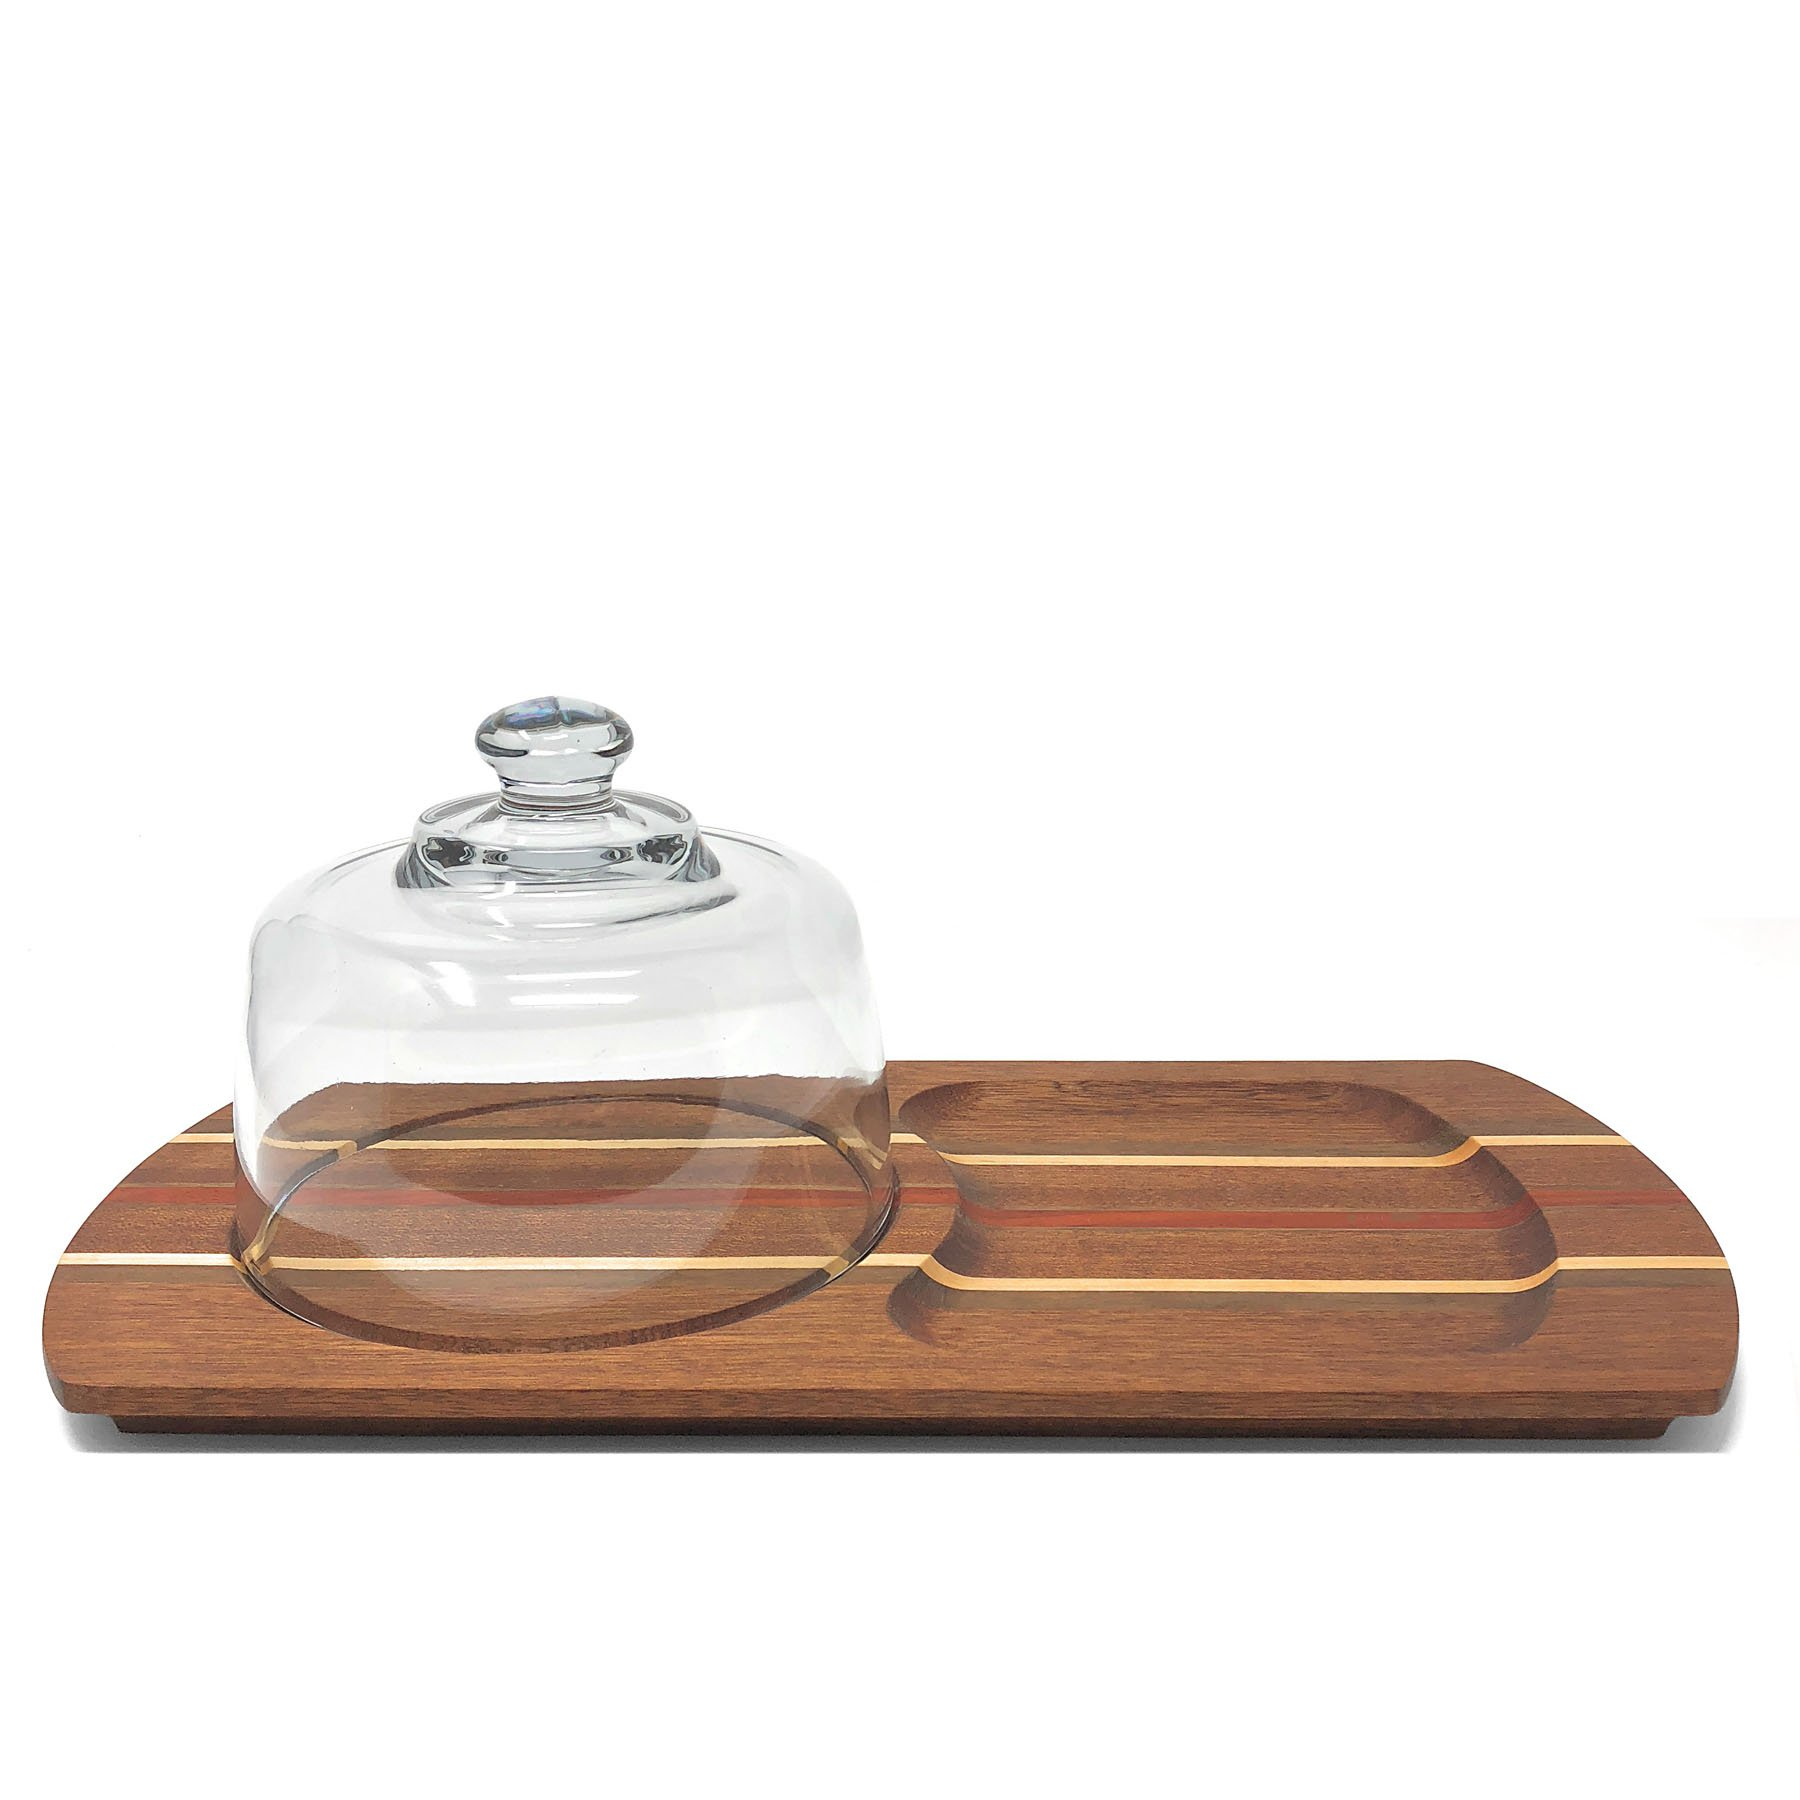 Mystic Woodworks Cheese Tray with Glass Dome, Medium/Dark